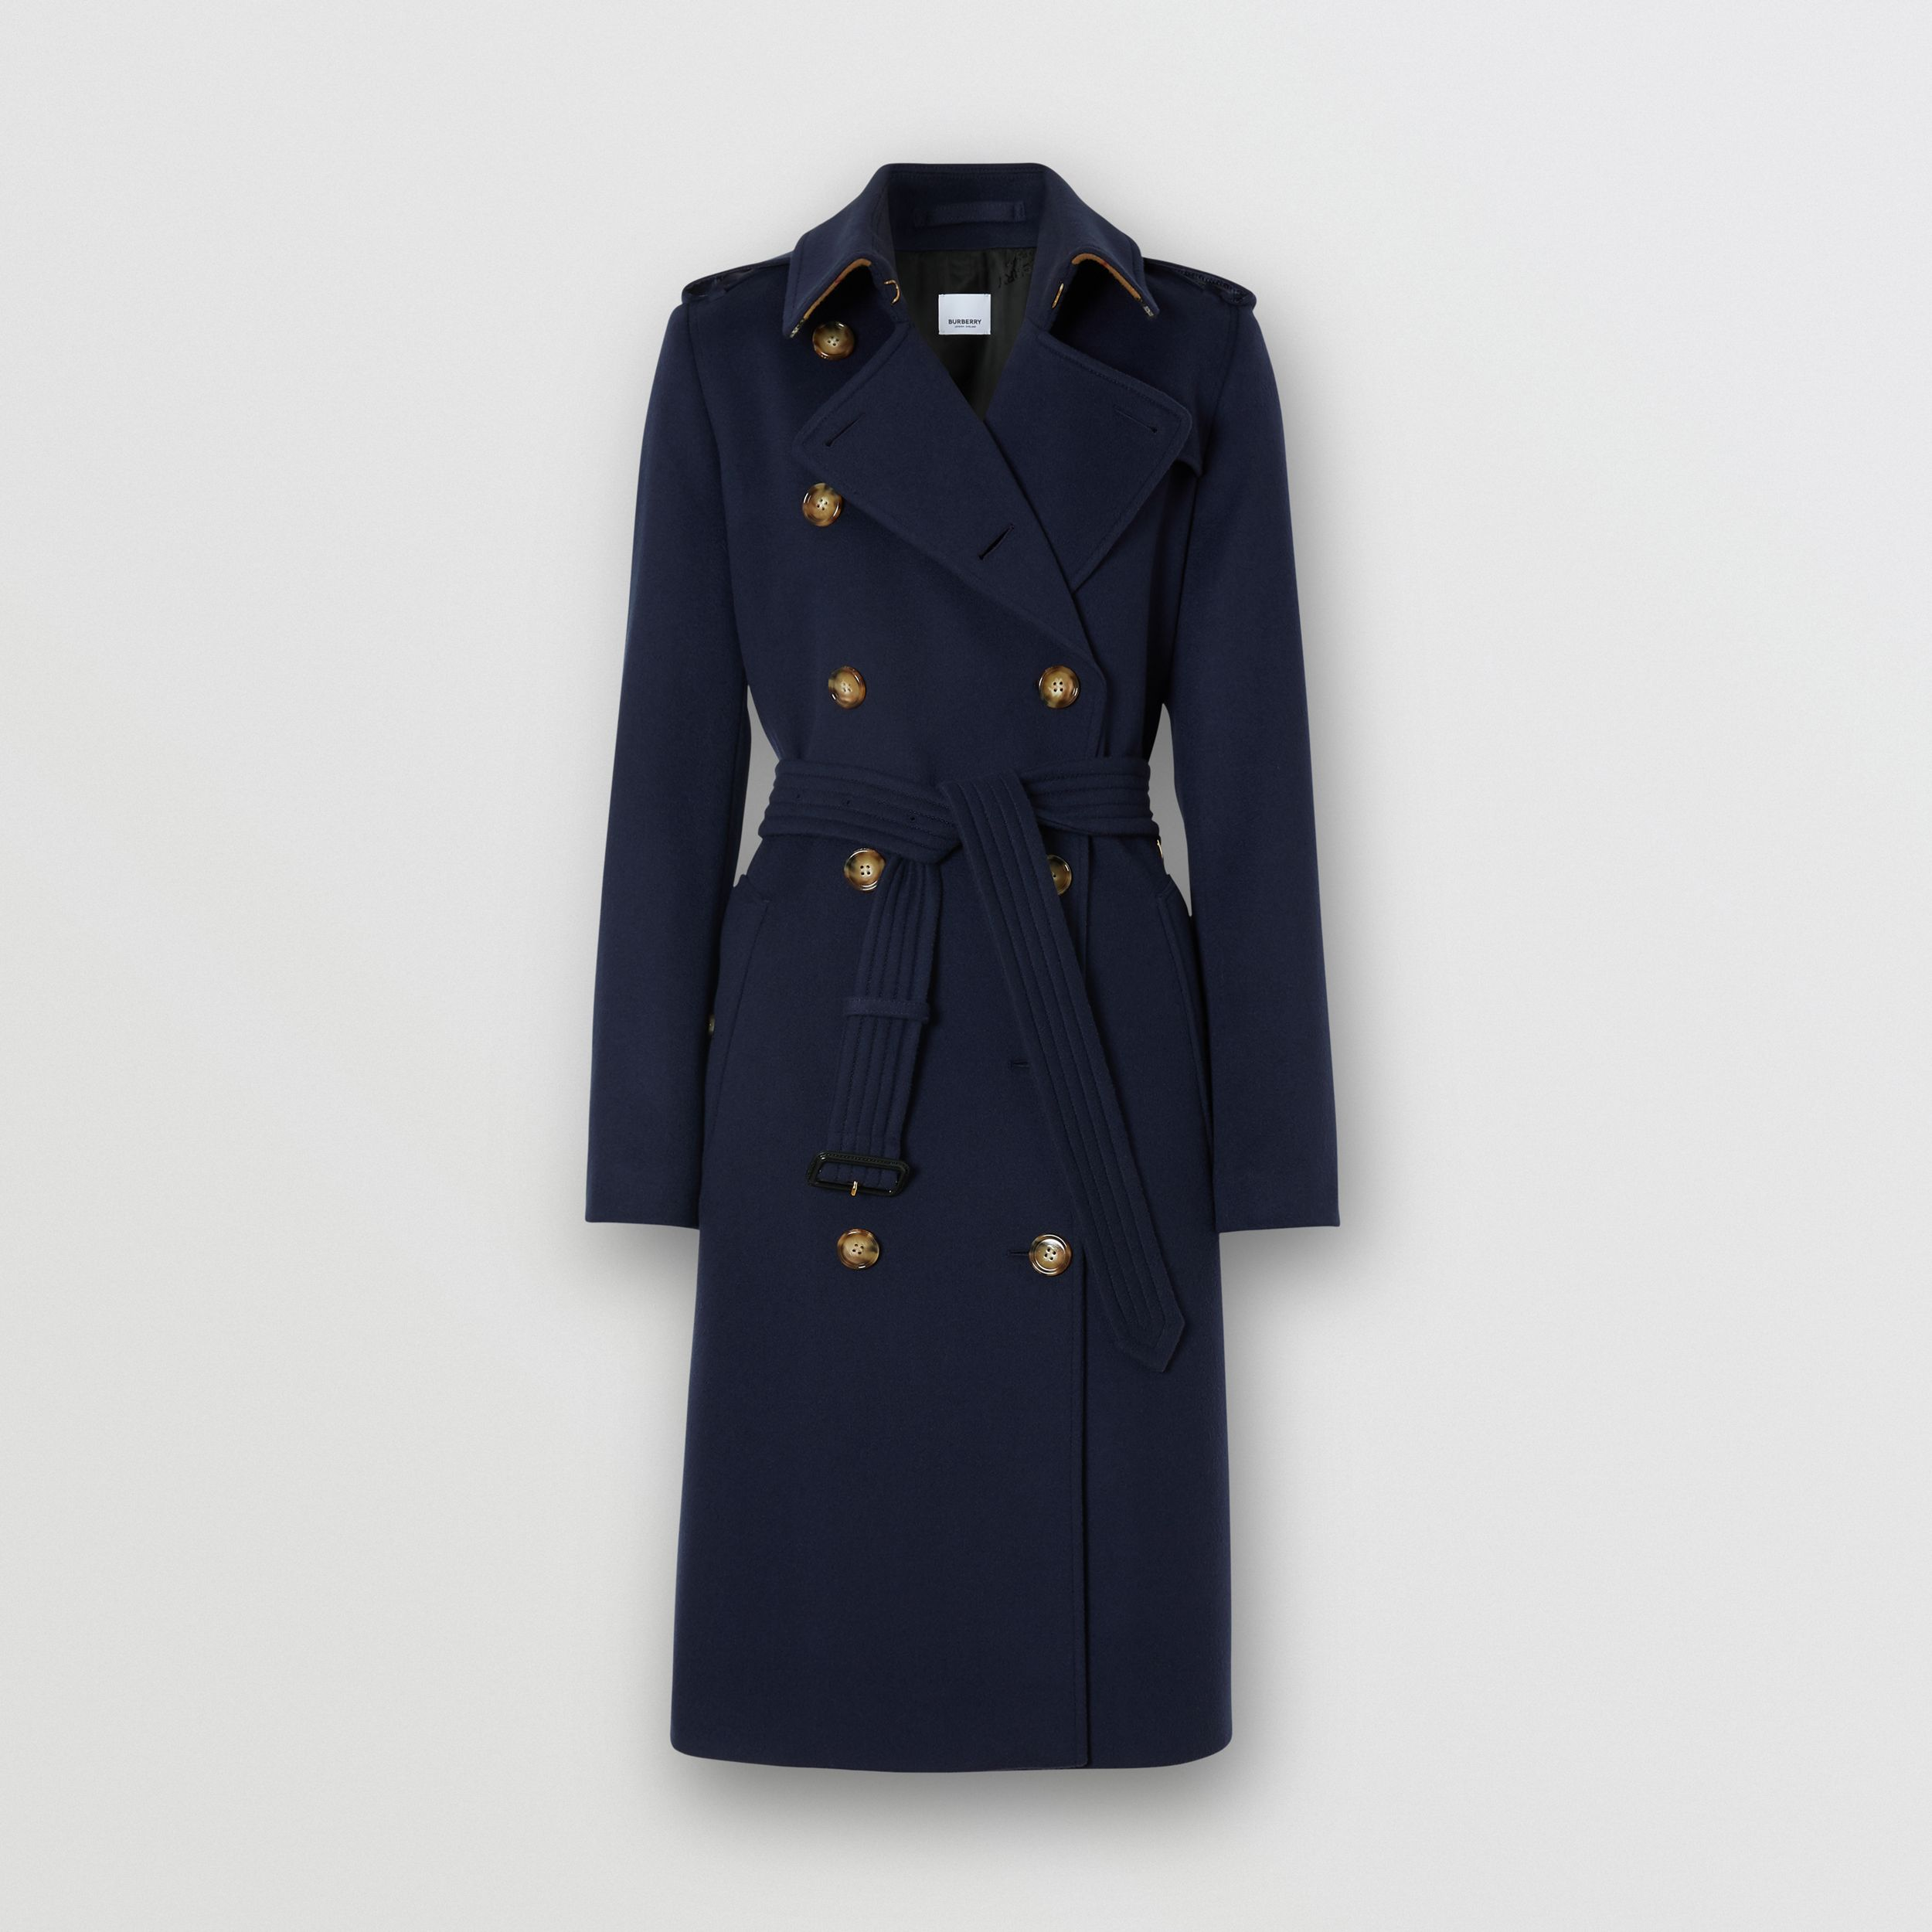 Cashmere Trench Coat in Navy - Women | Burberry - 4